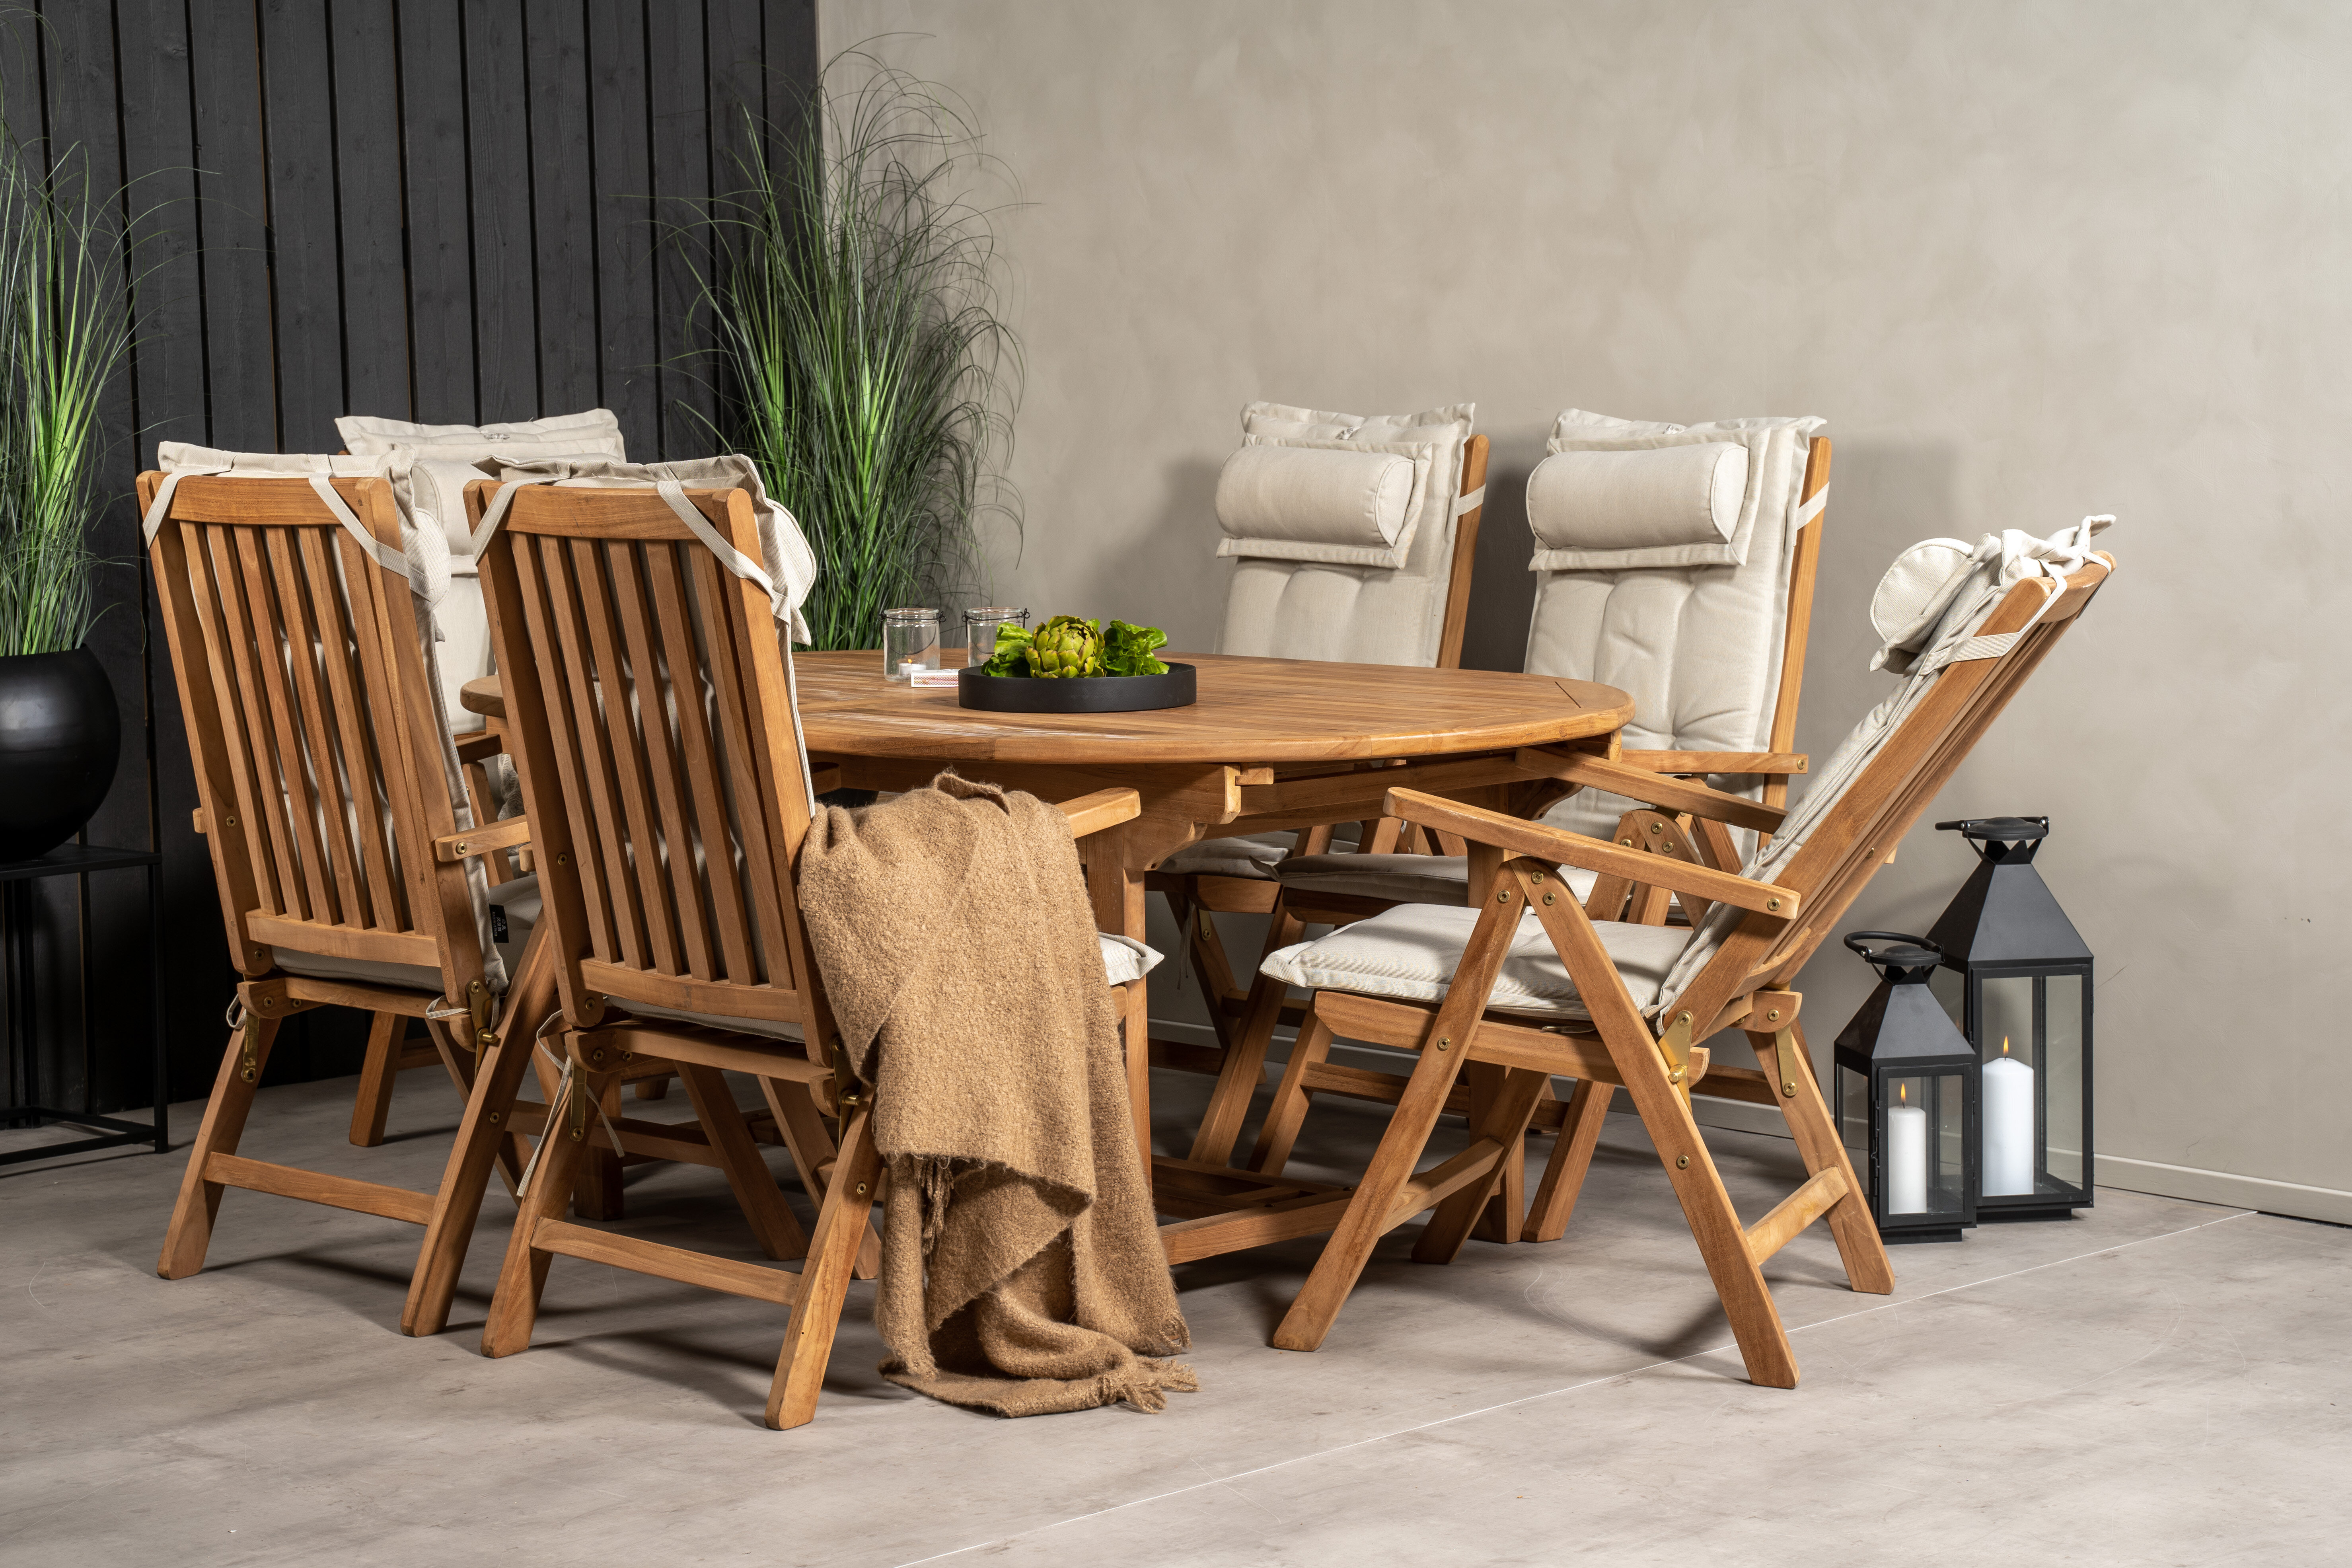 Dakota Fields Baek 6 Seater Dining Set With Cushions Wayfair Co Uk